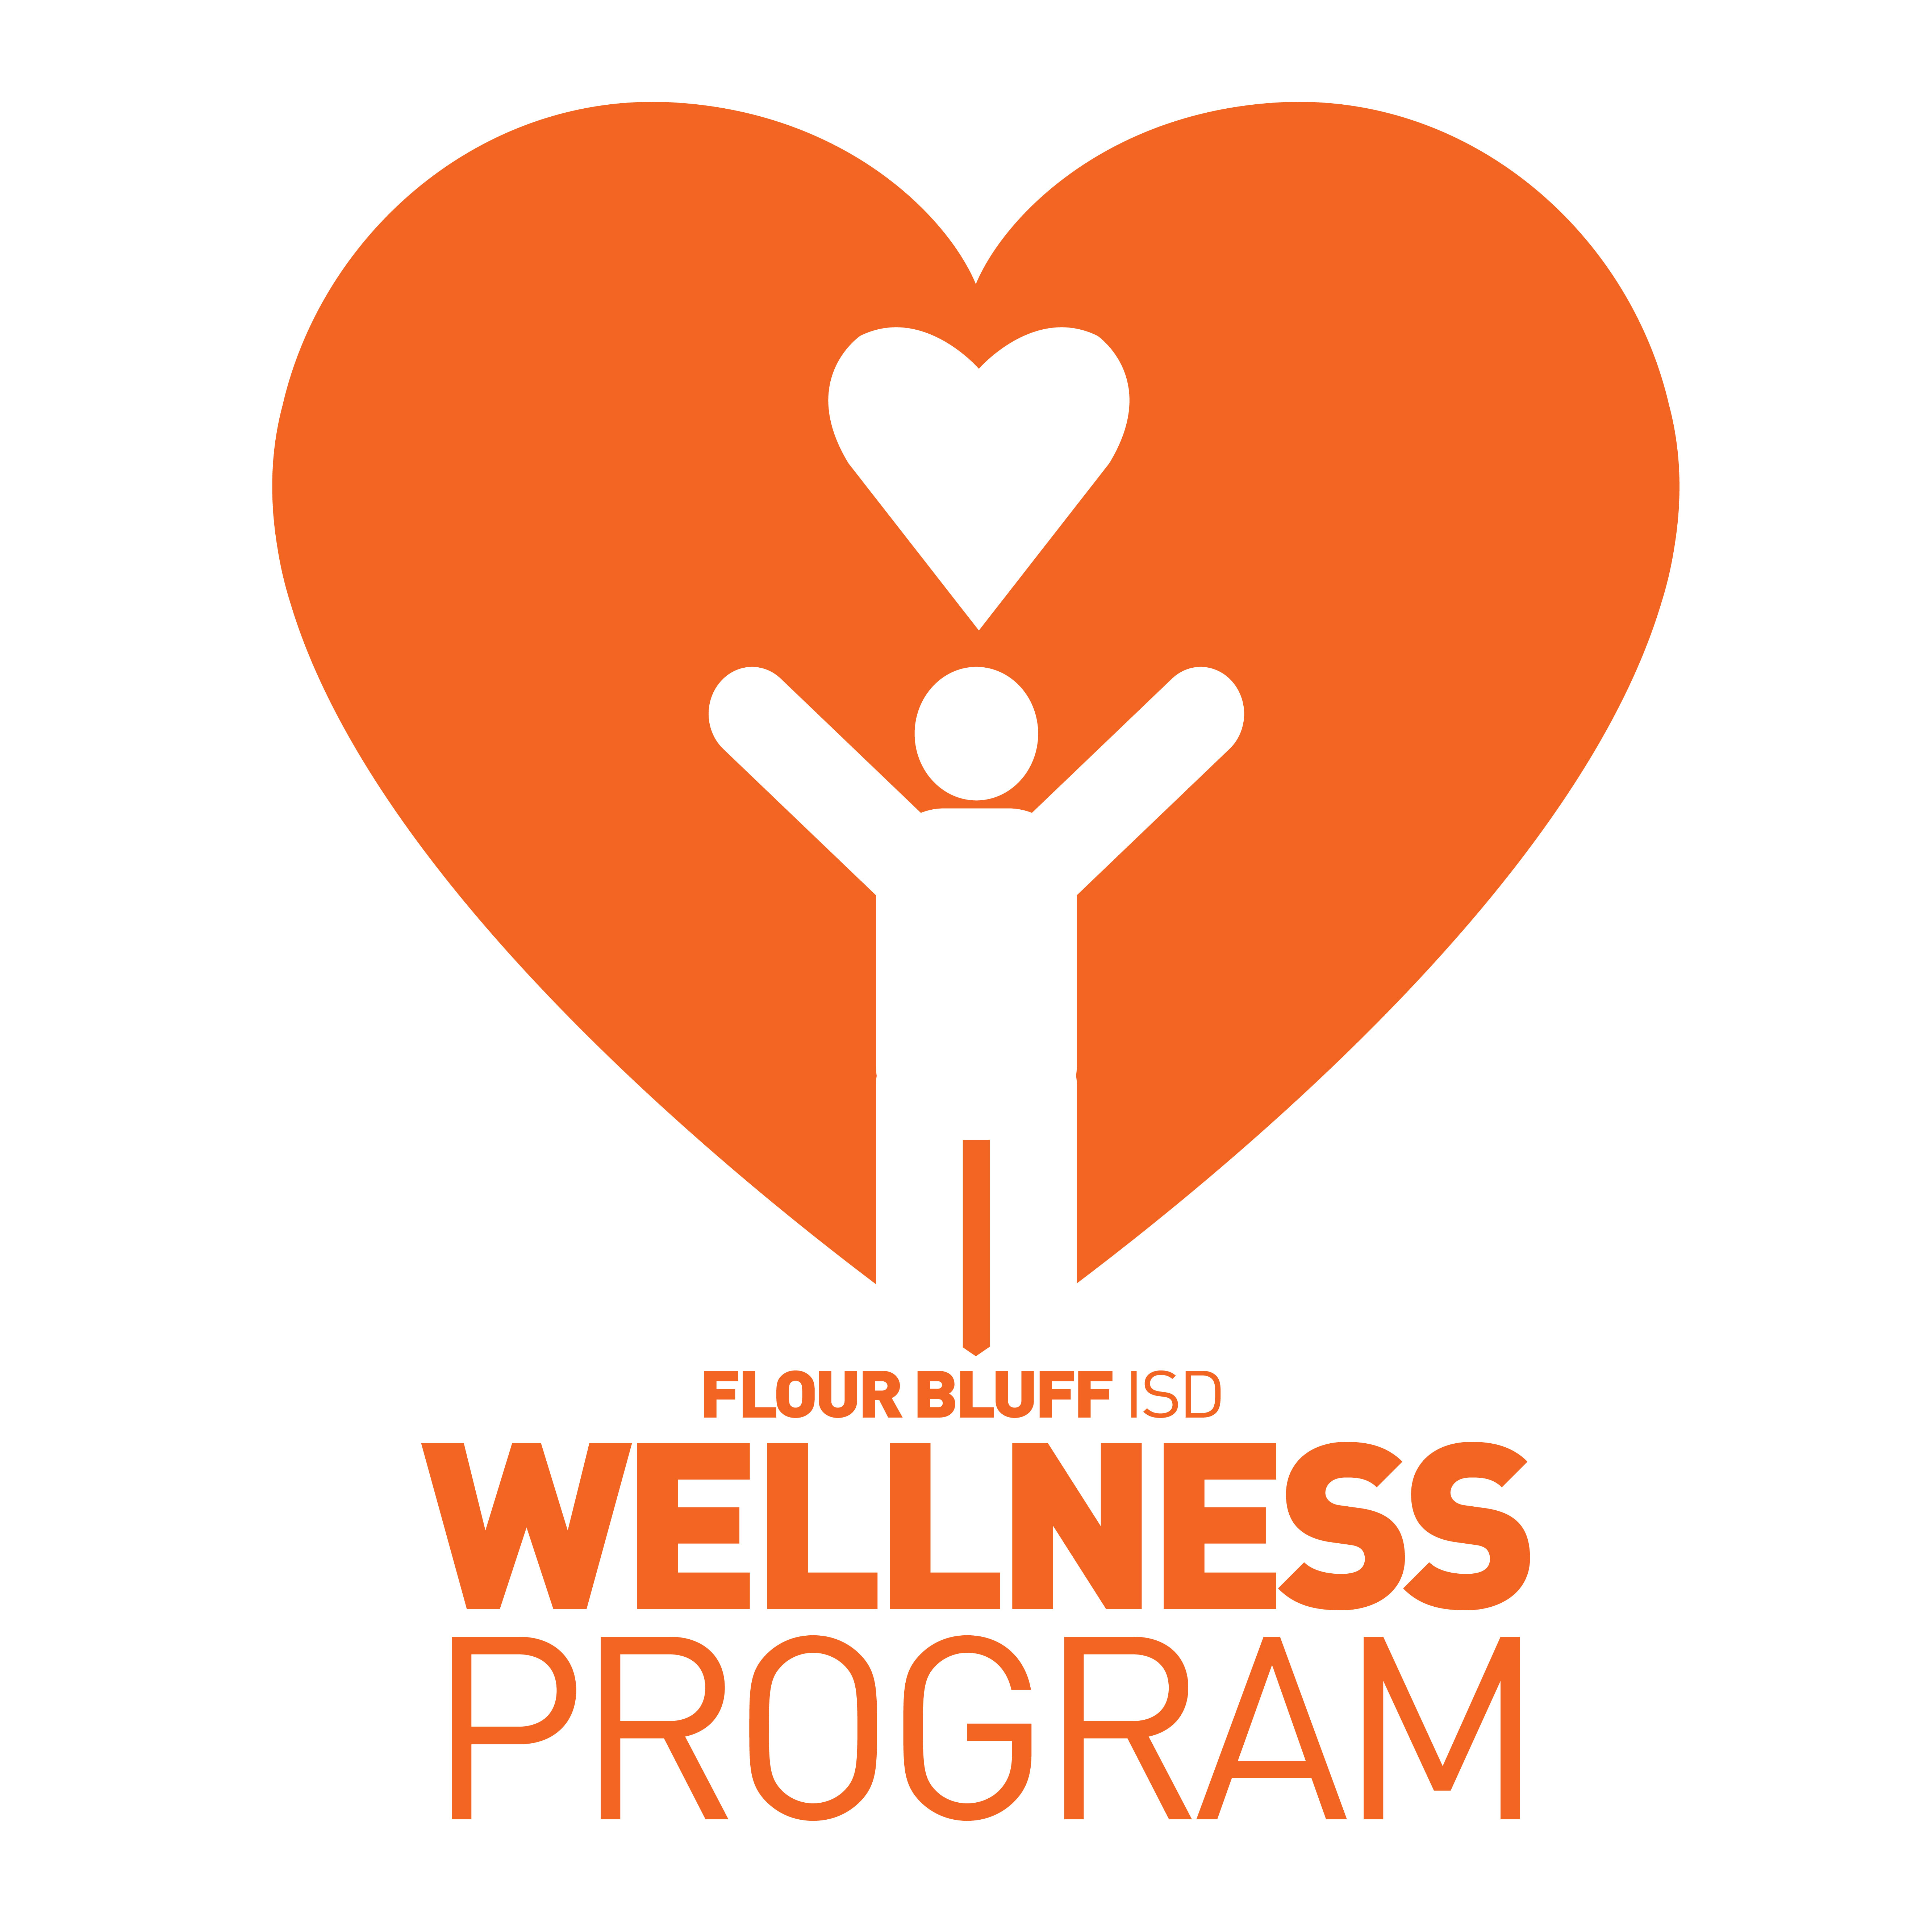 Employee Wellness Image Logo